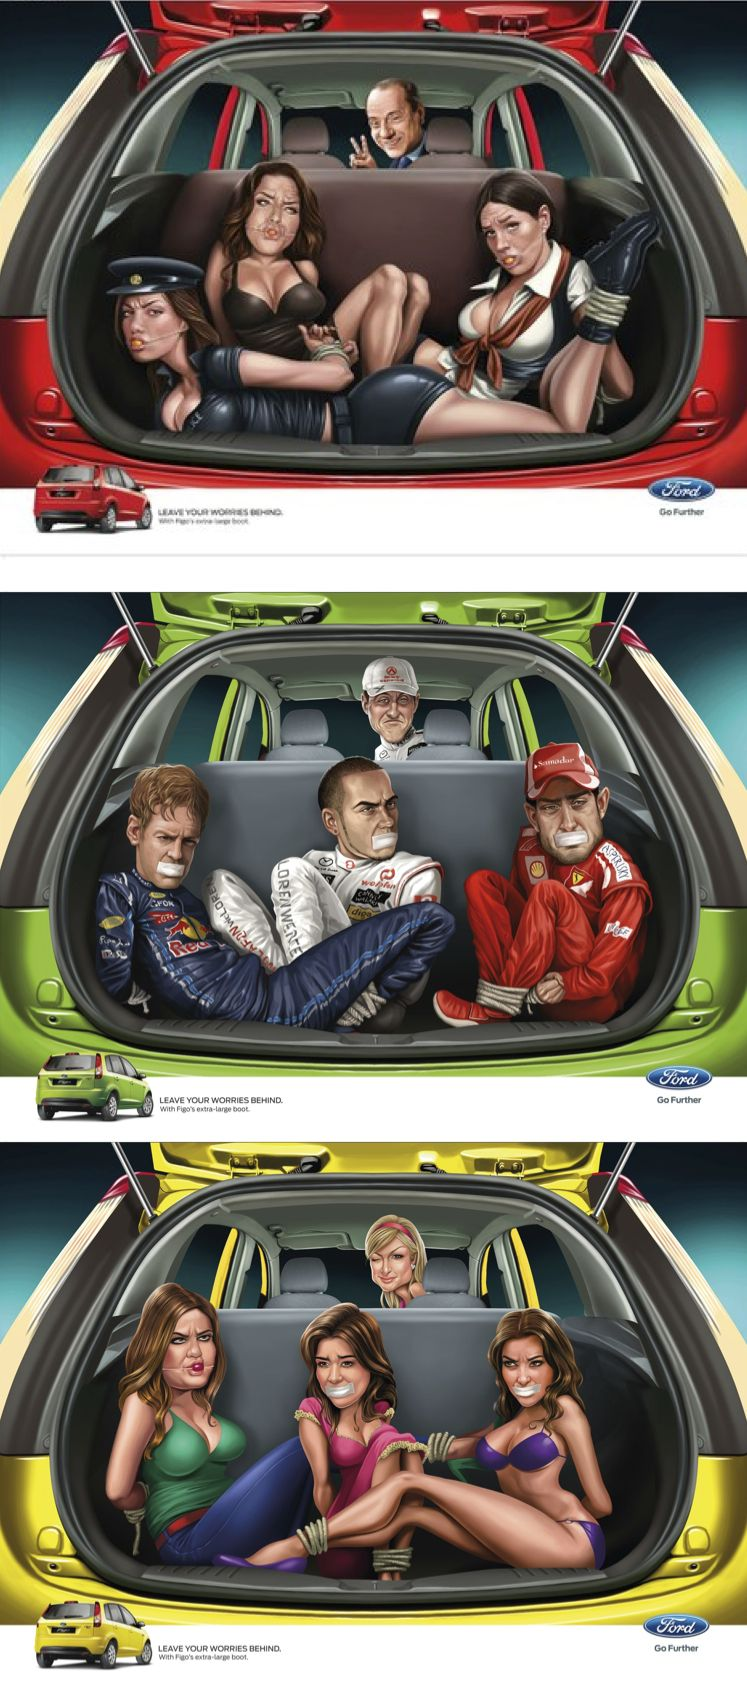 Ads Created To Promote The Ford Figo Hatchback In India One